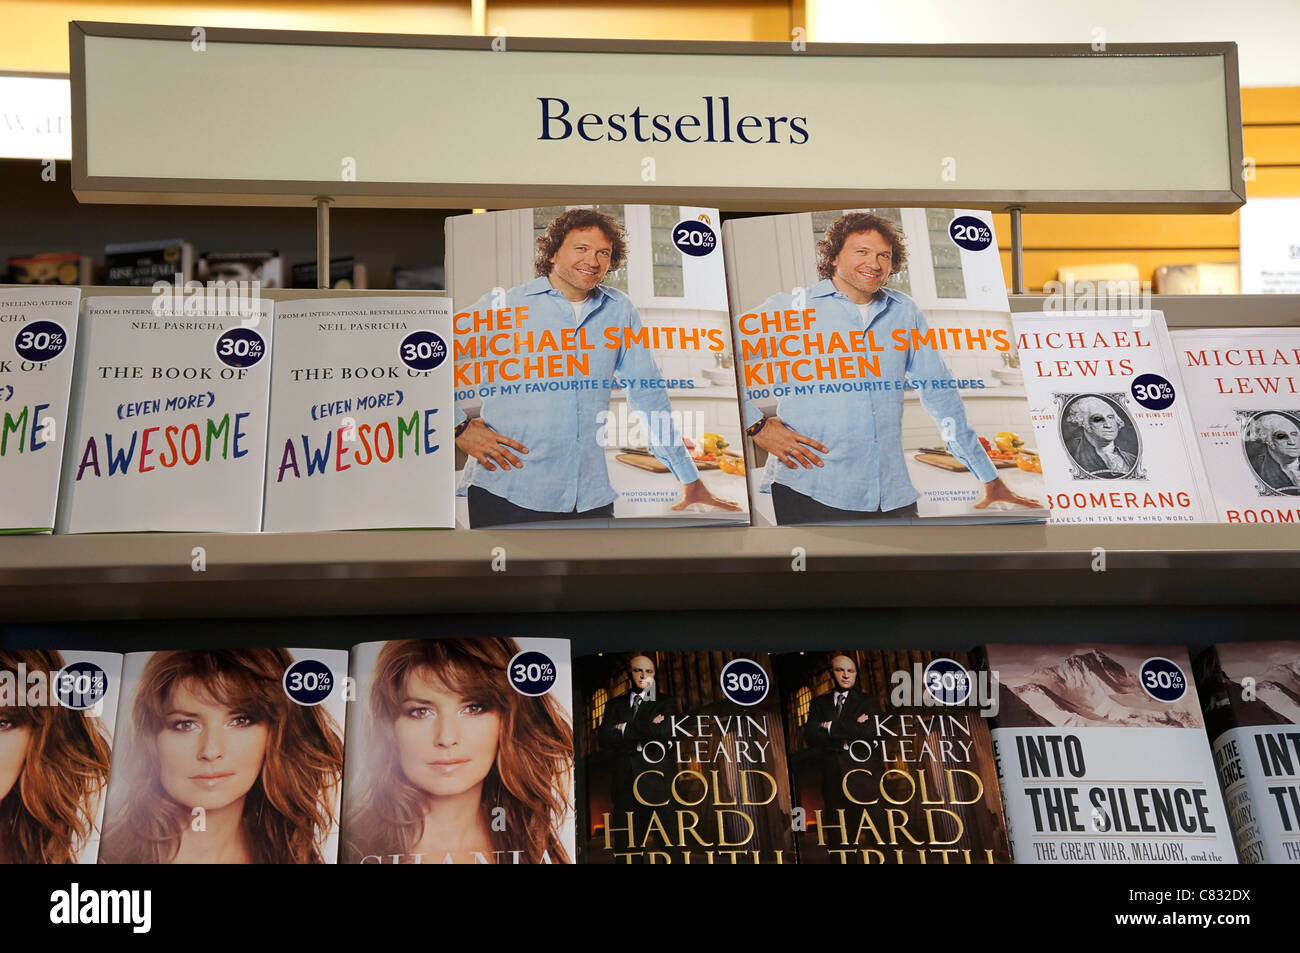 Bestsellers, Best Selling Books by Michael Smith, Neil Pasricha, Kevin O'Leary - Stock Image